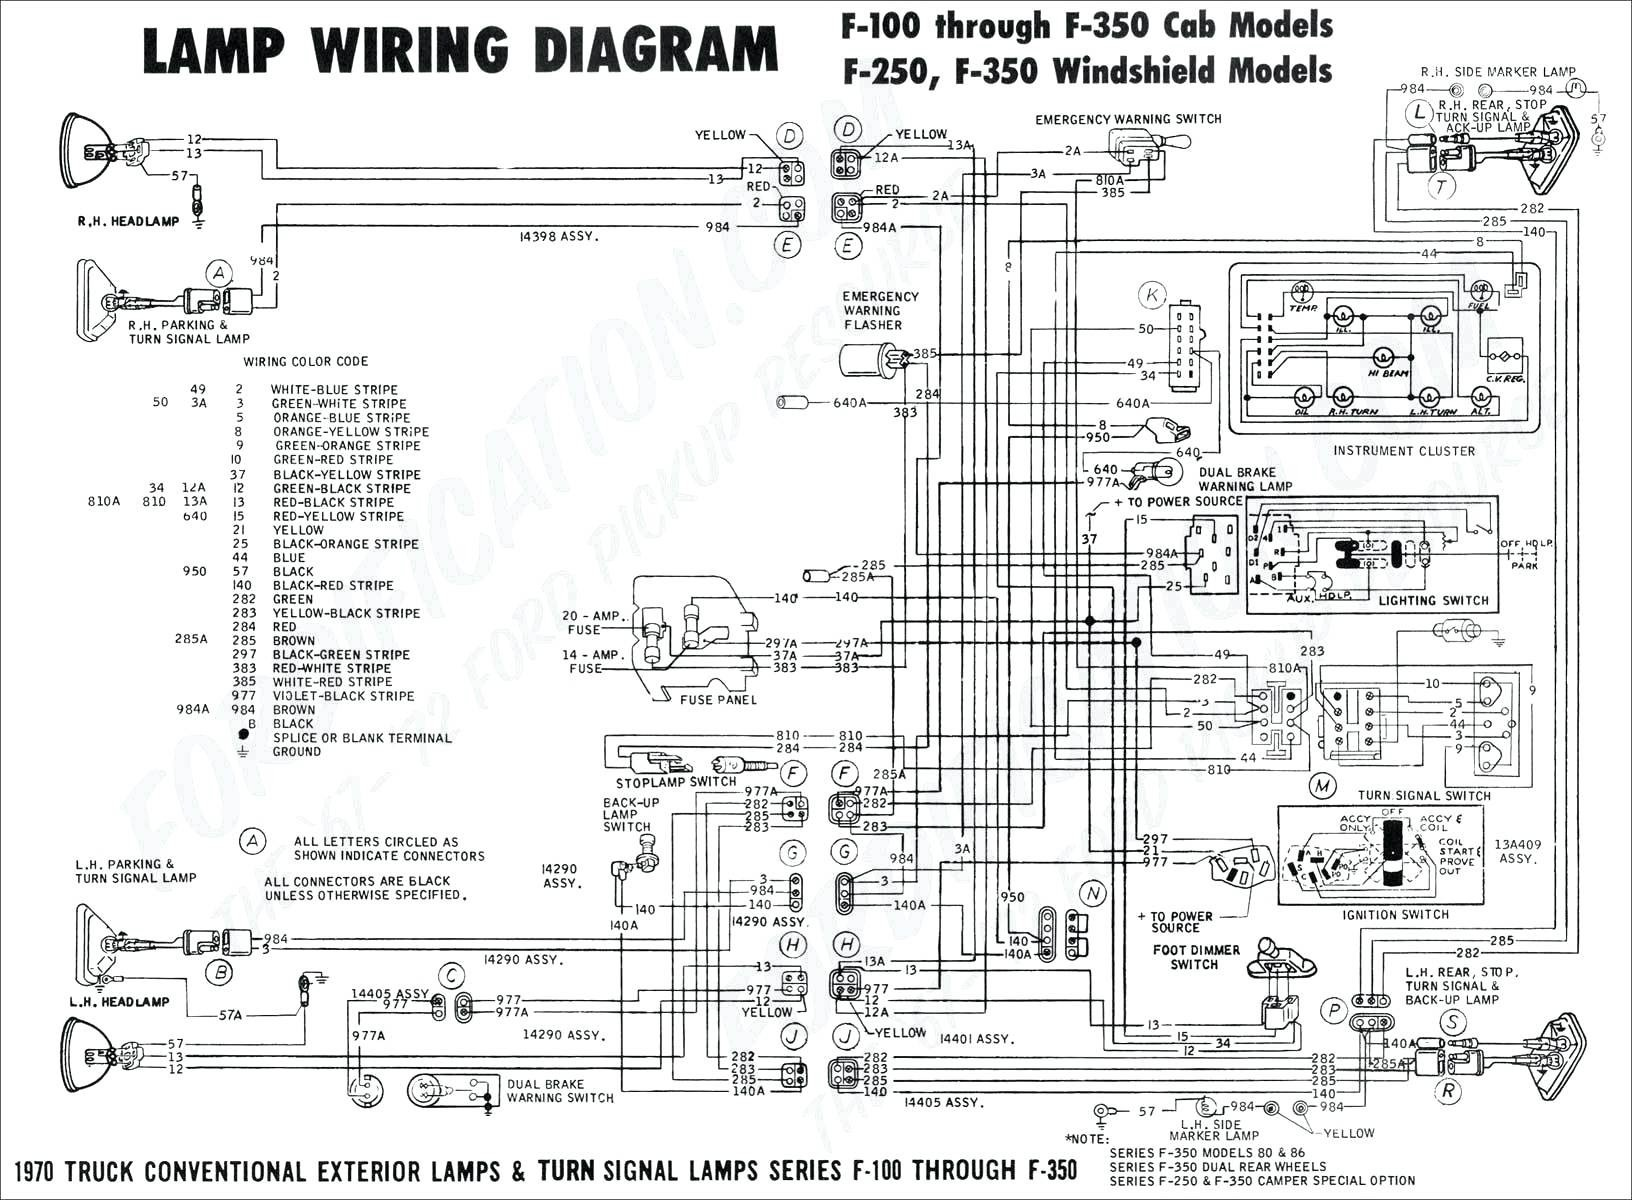 2003 Ram Wiring Diagram Wiring Diagram Datasource 2003 Dodge 2500 Trailer Wiring